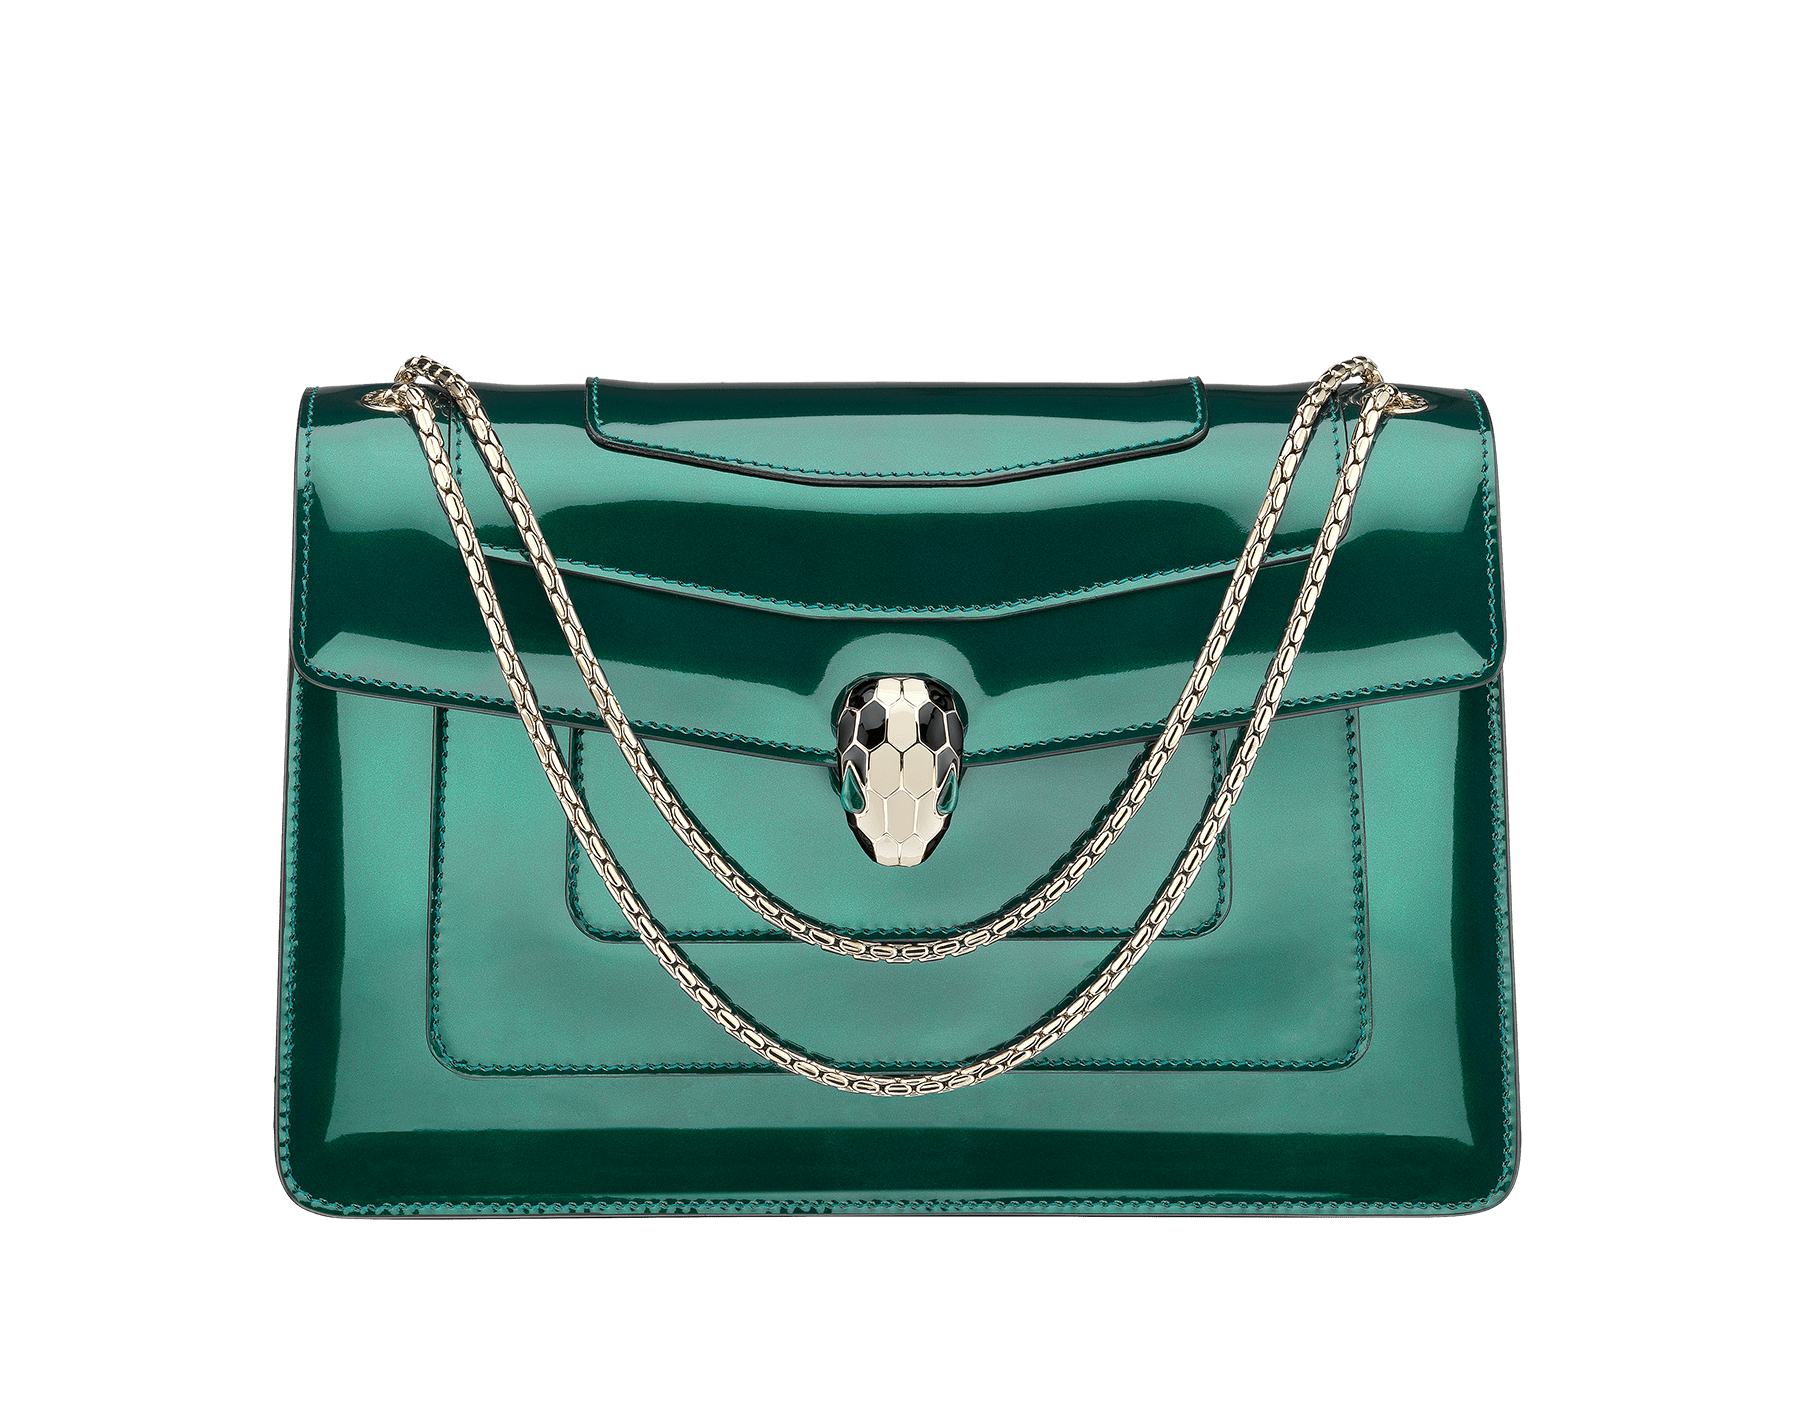 Flap cover bag Serpenti Forever in forest emerald brushed metallic calf leather. Brass light gold plated snake head closure in black and white enamel with eyes in green malachite. 283535 image 1